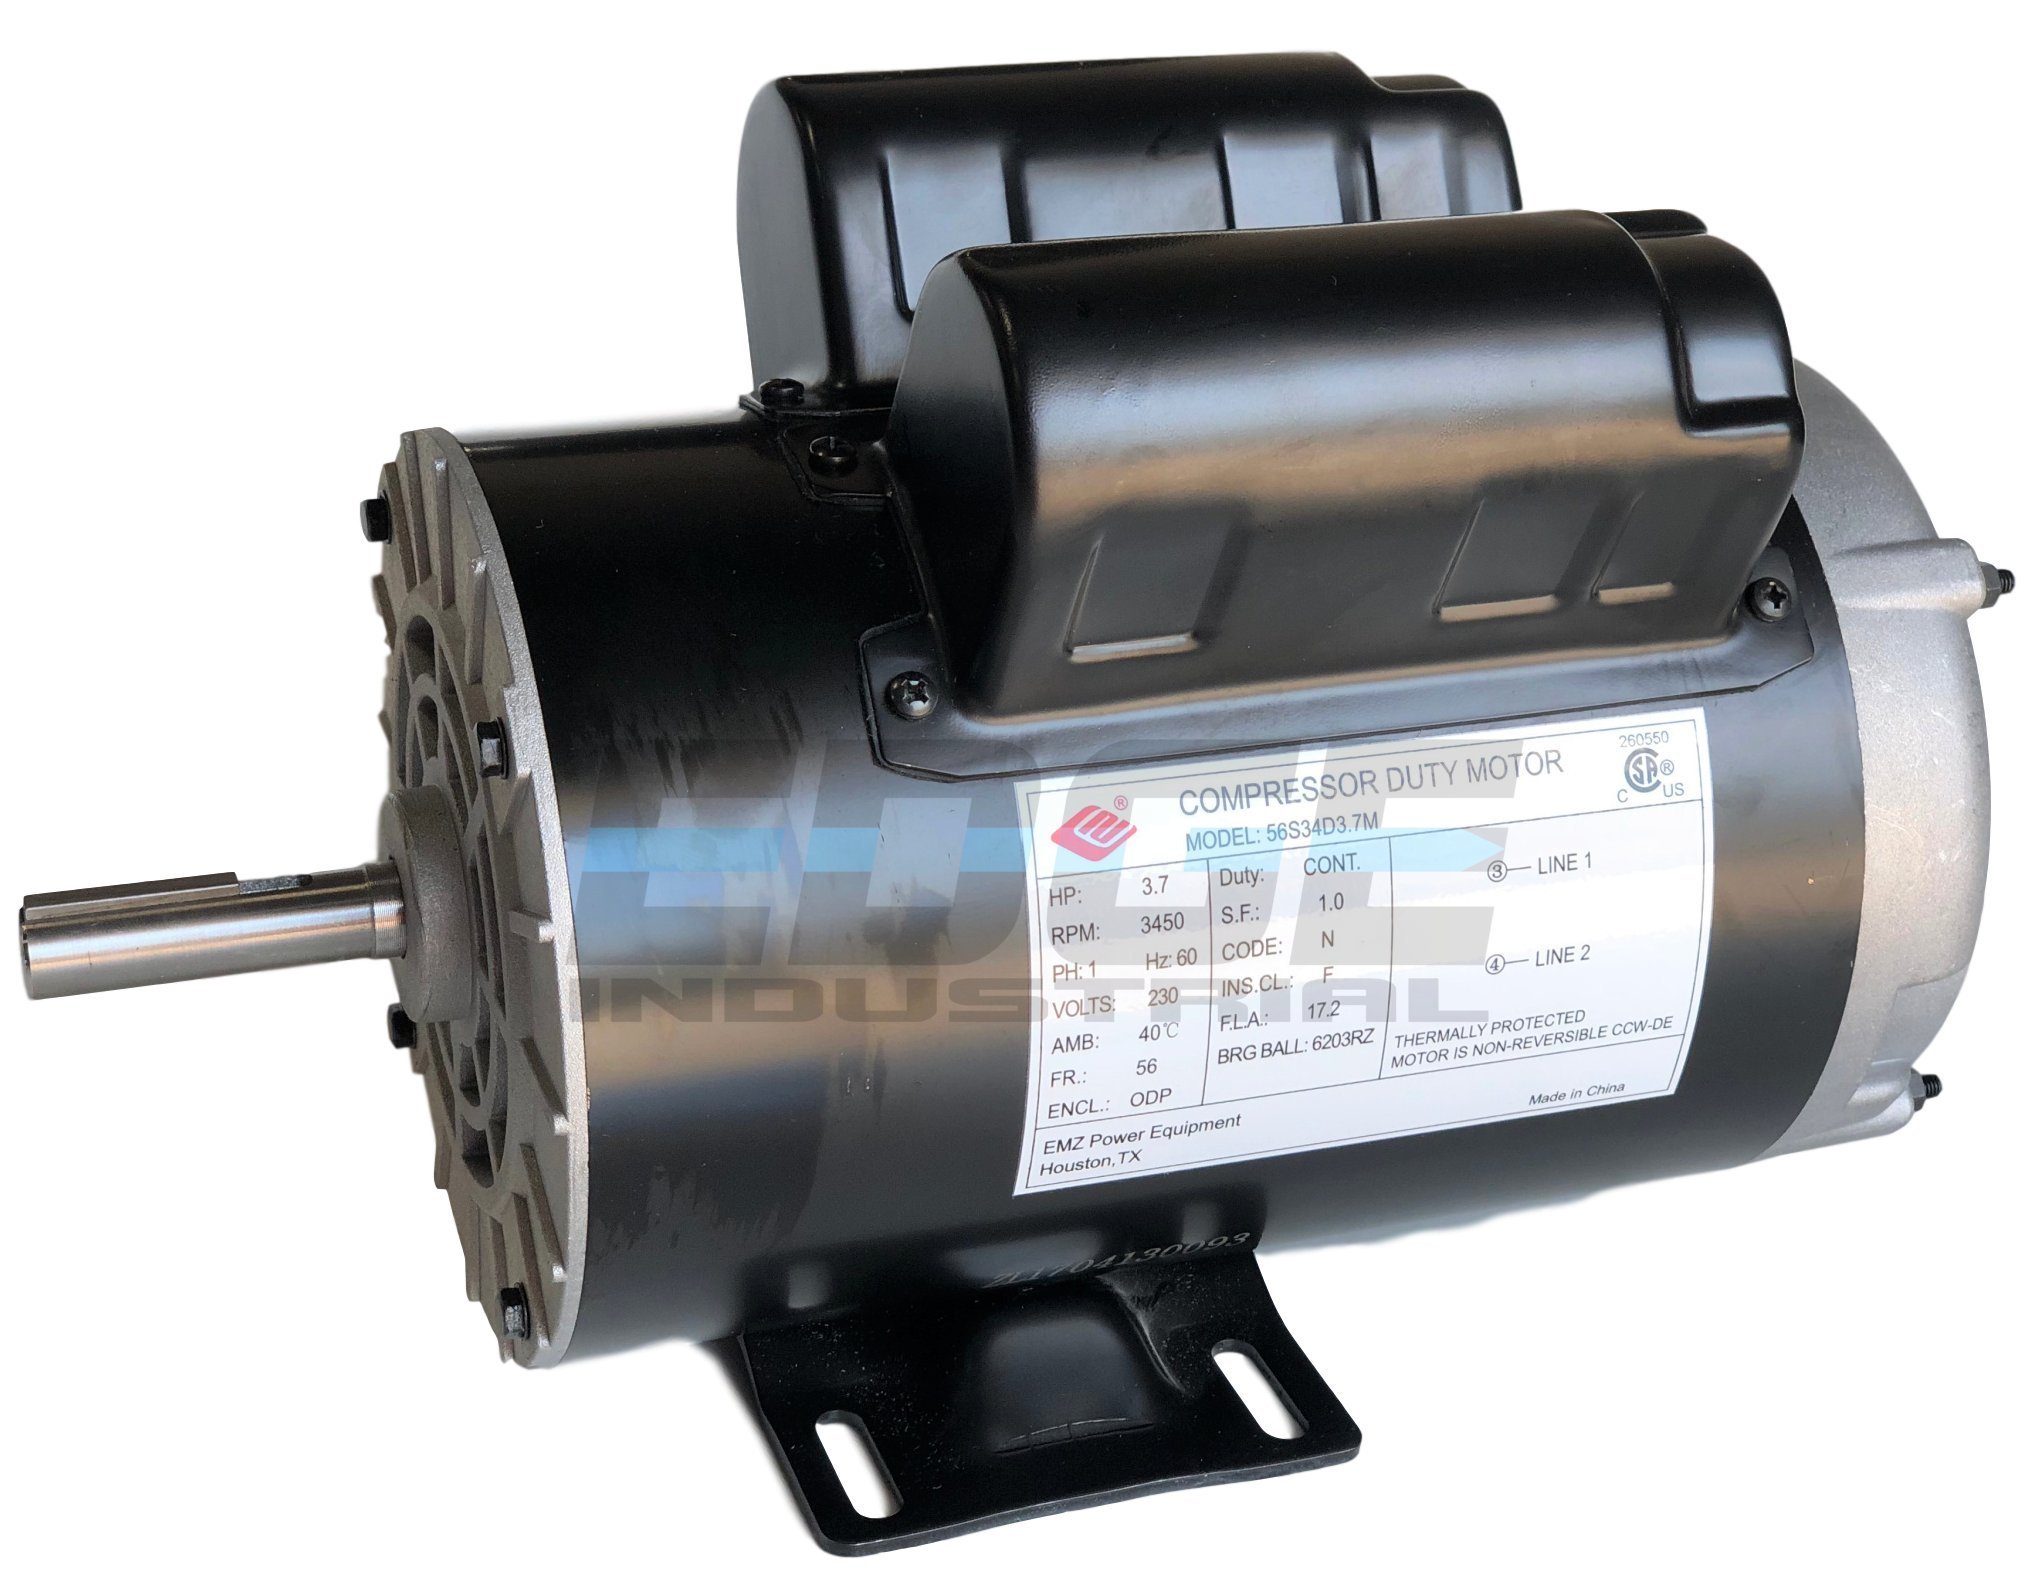 NEW 3.7HP COMPRESSOR DUTY ELECTRIC MOTOR, 56 FRAME, 3450 RPM, 5/8'' SHAFT DIAMETER, NEMA RATED MOTOR, REPLACES 5HP SPL MOTORS RATED 15-17AMPS